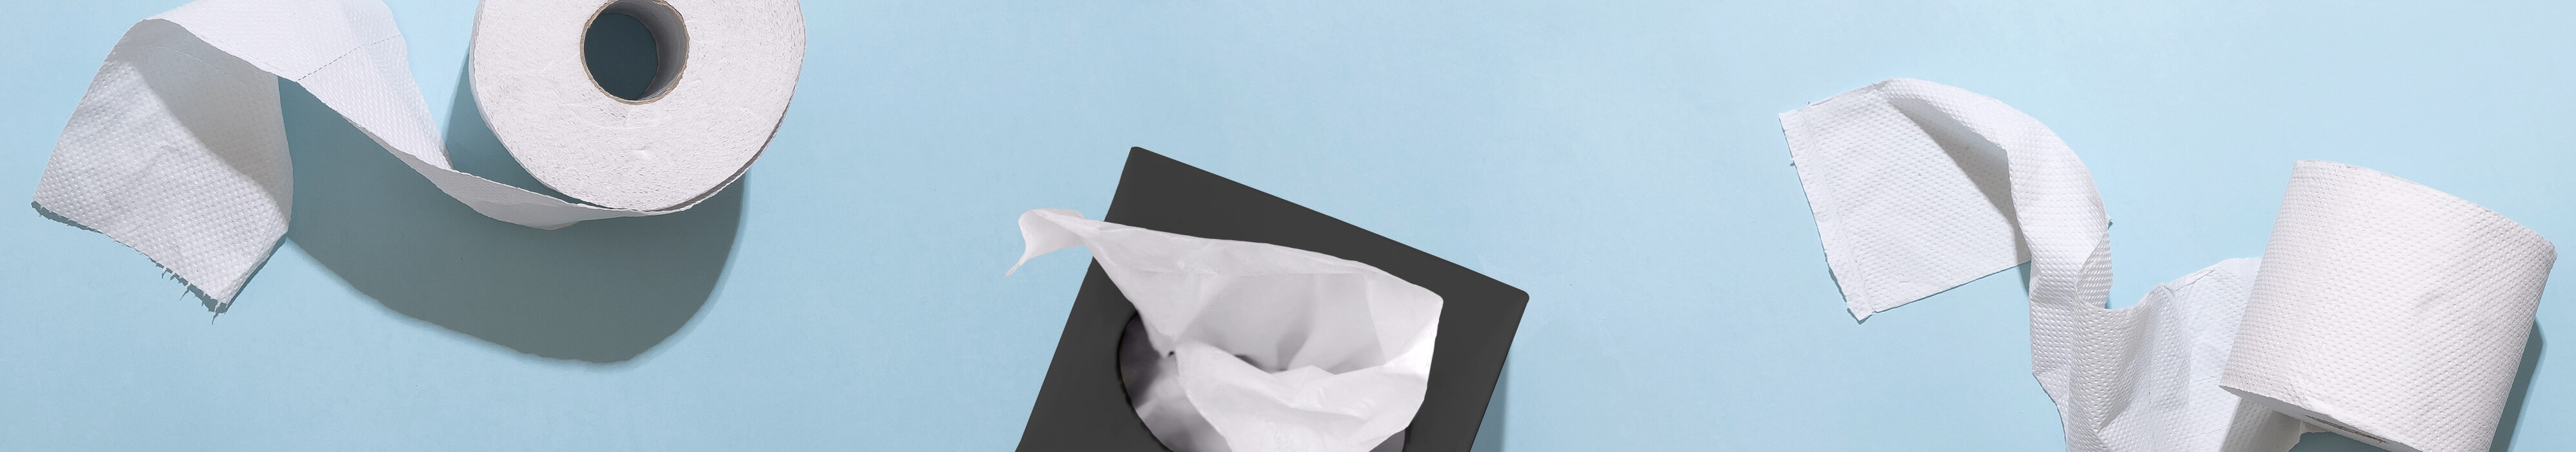 Toilet paper and tissues